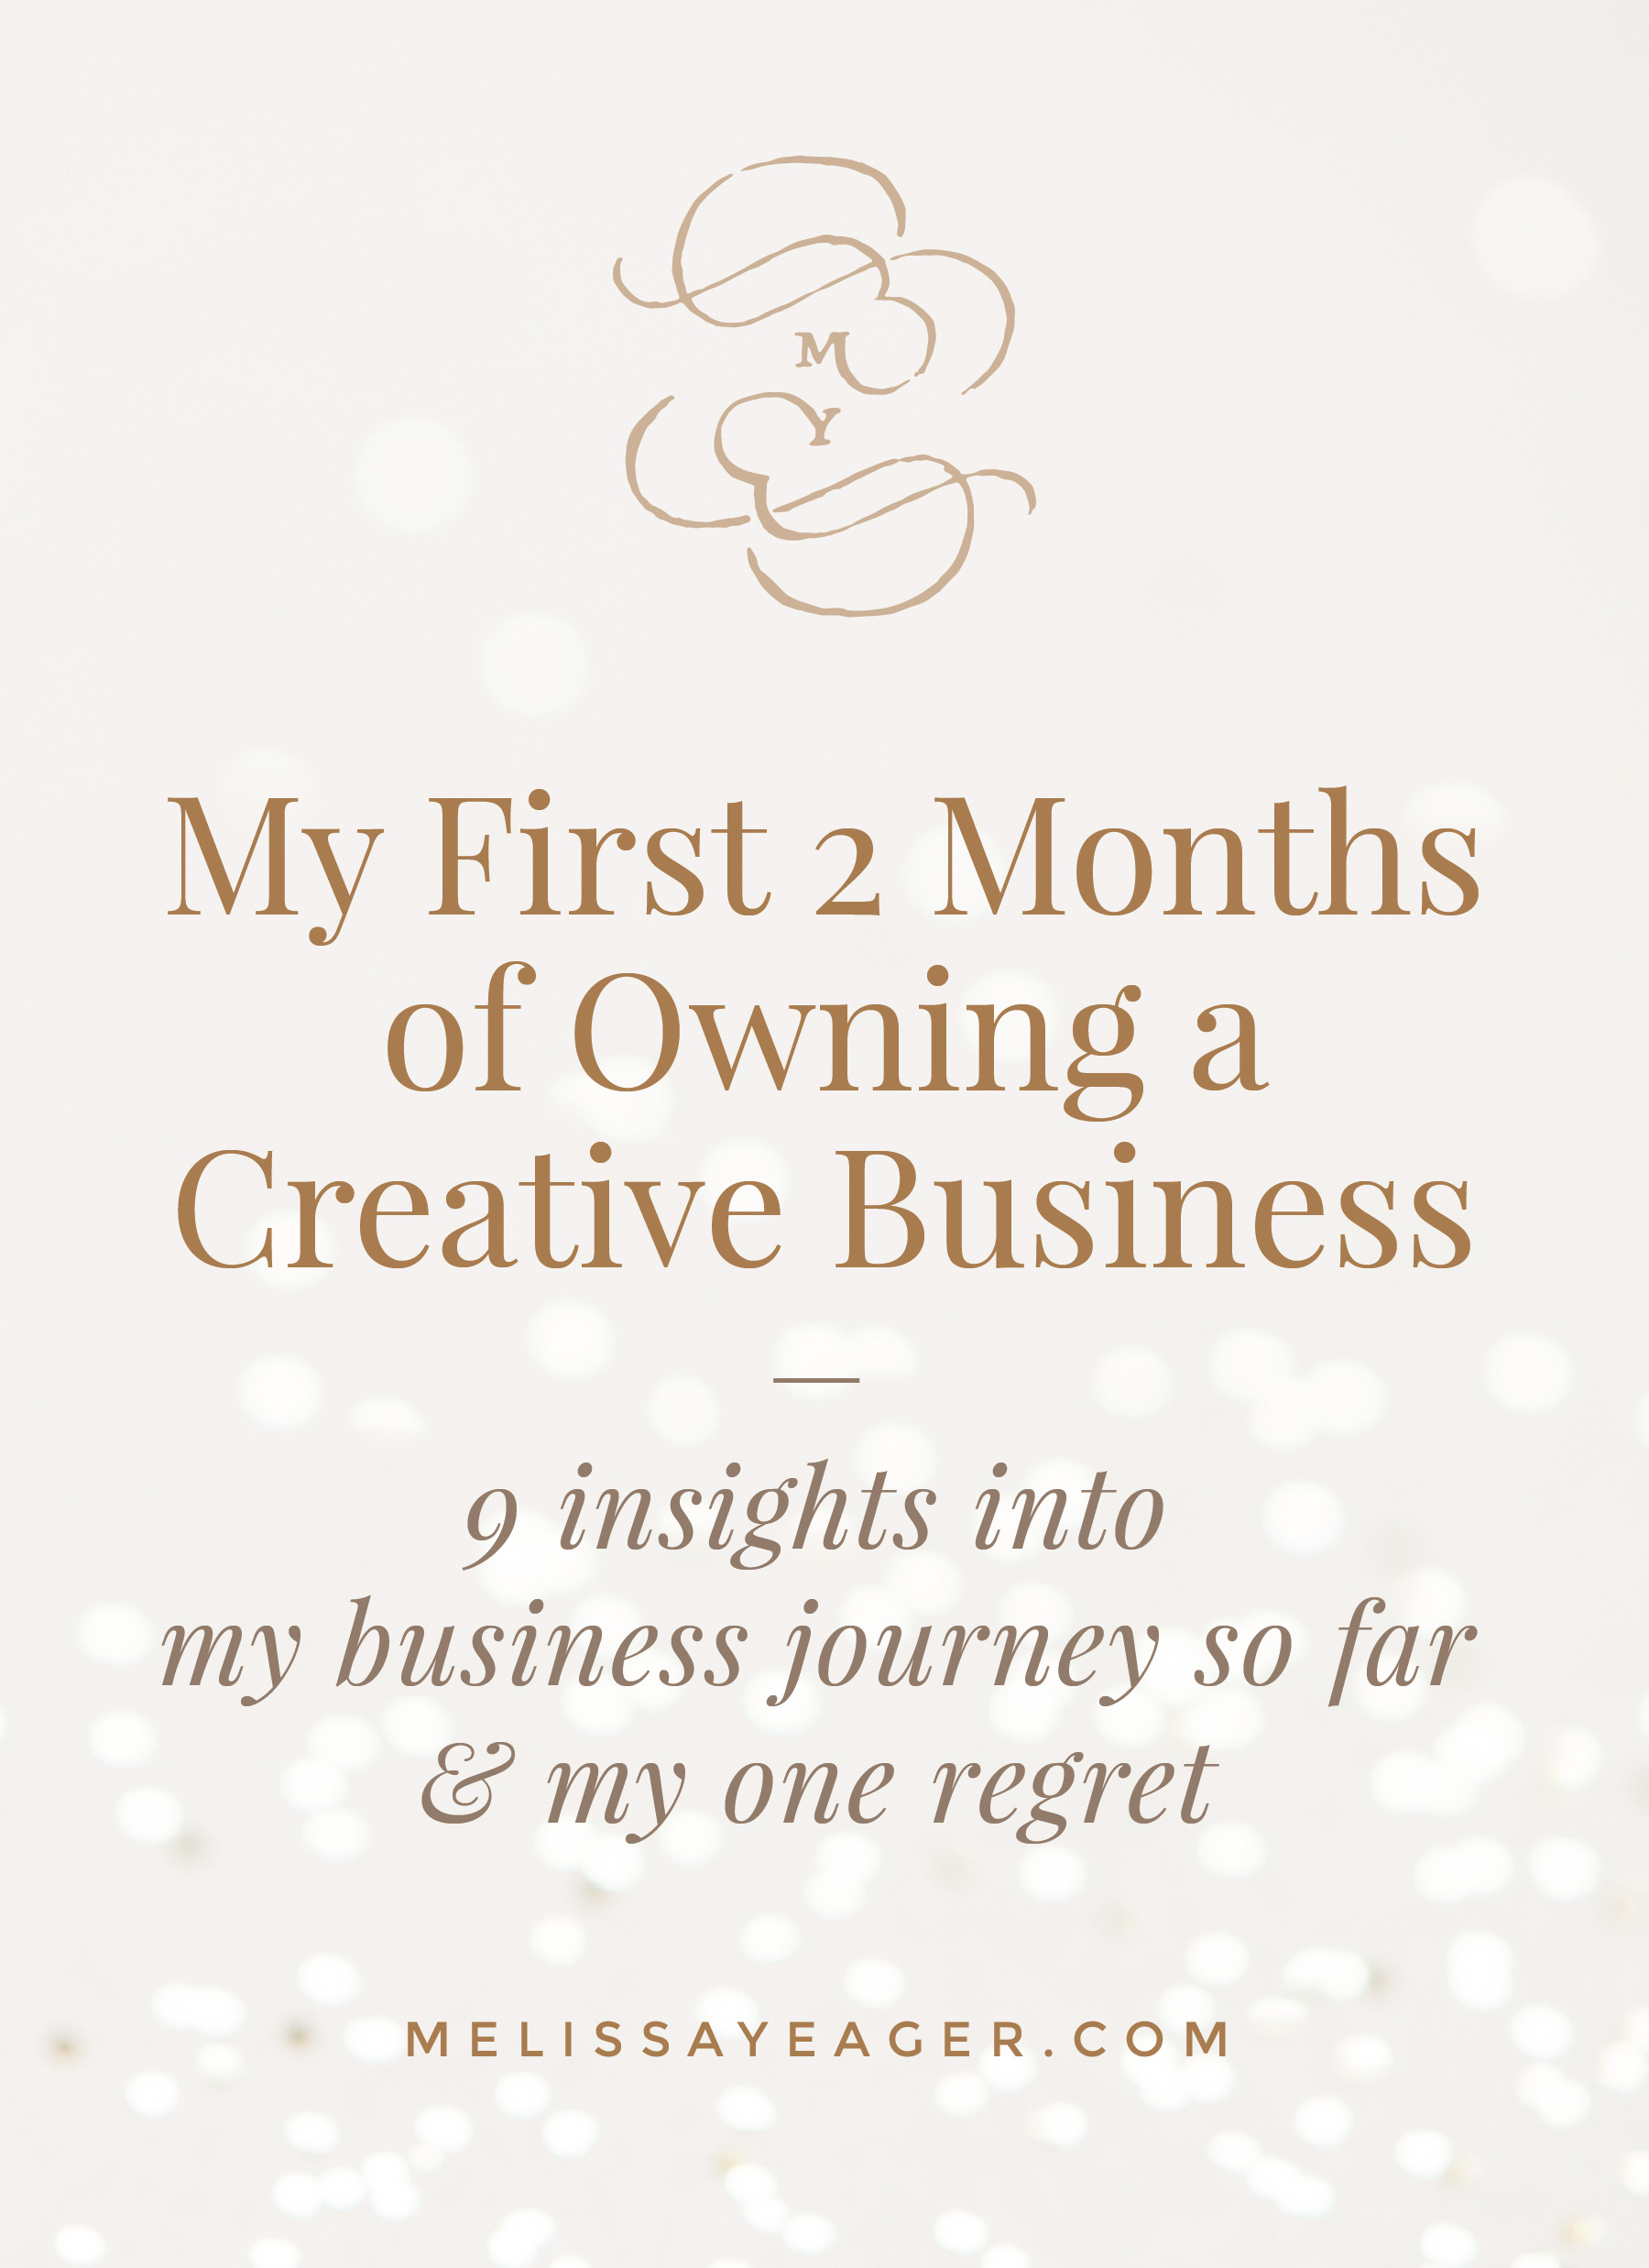 My First 2 Months of Owning a Creative Business - 9 insights into my business journey so far & my one regret